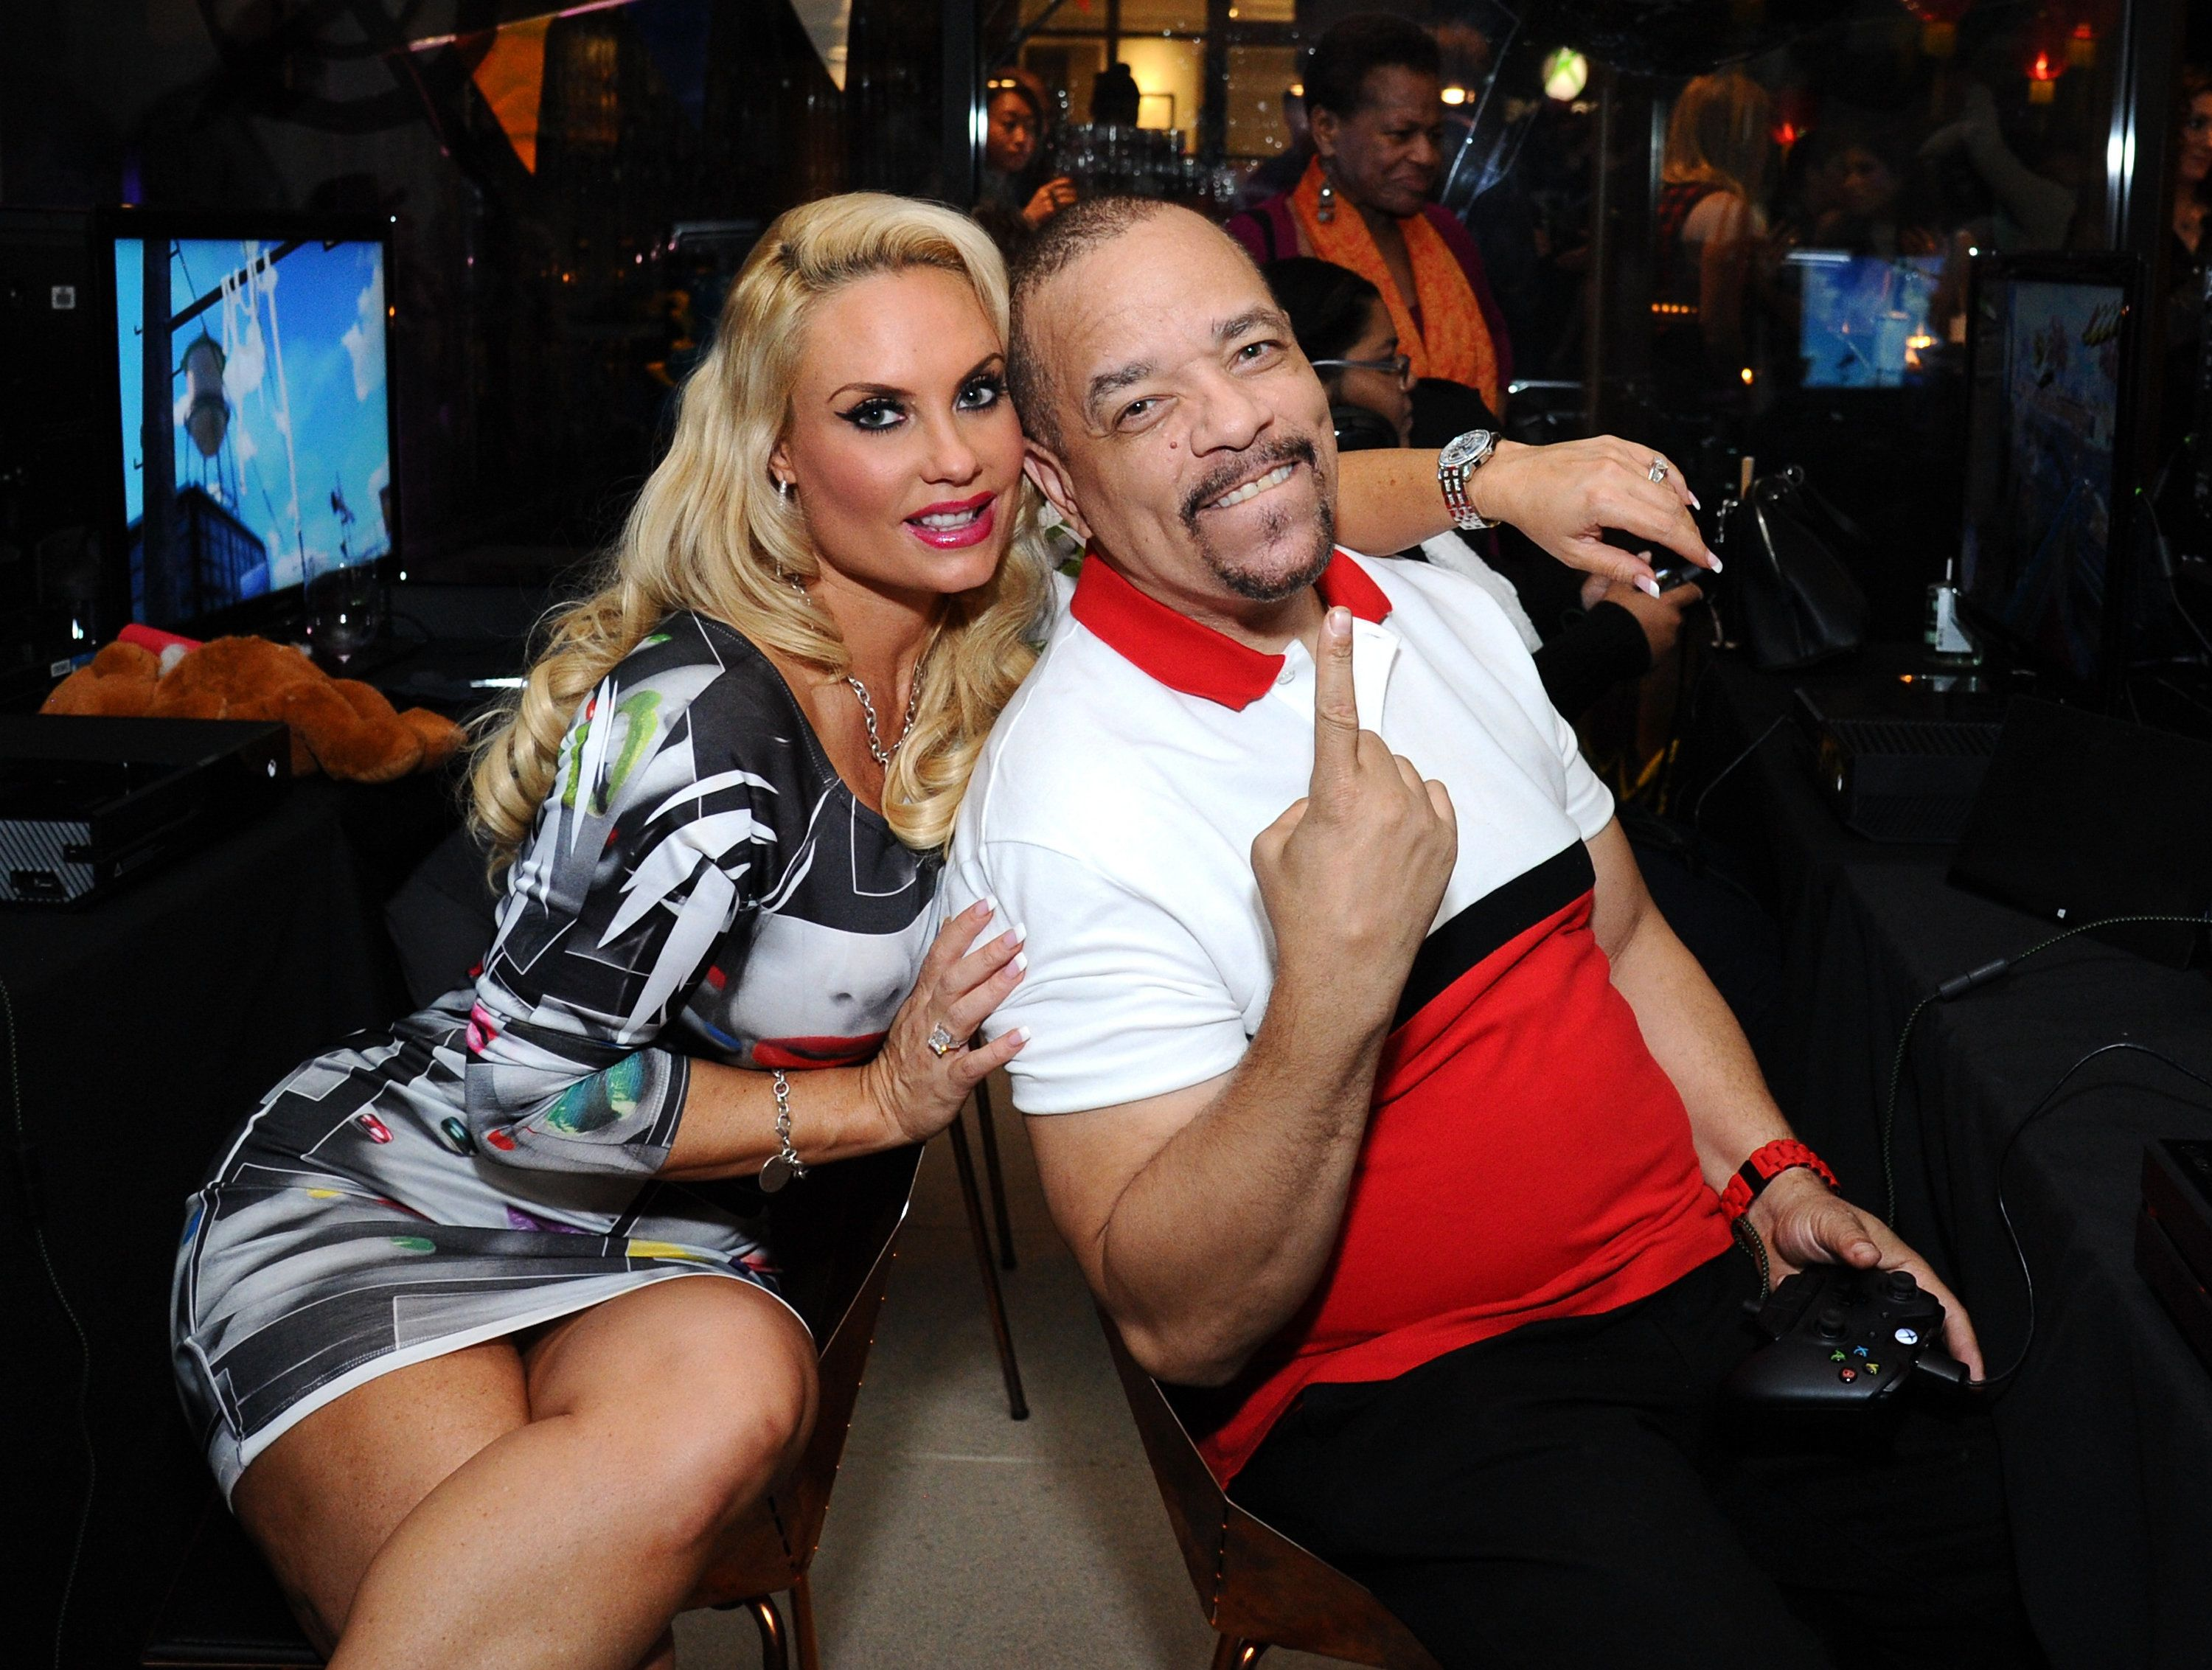 Ice t and coco sex tape photos 27